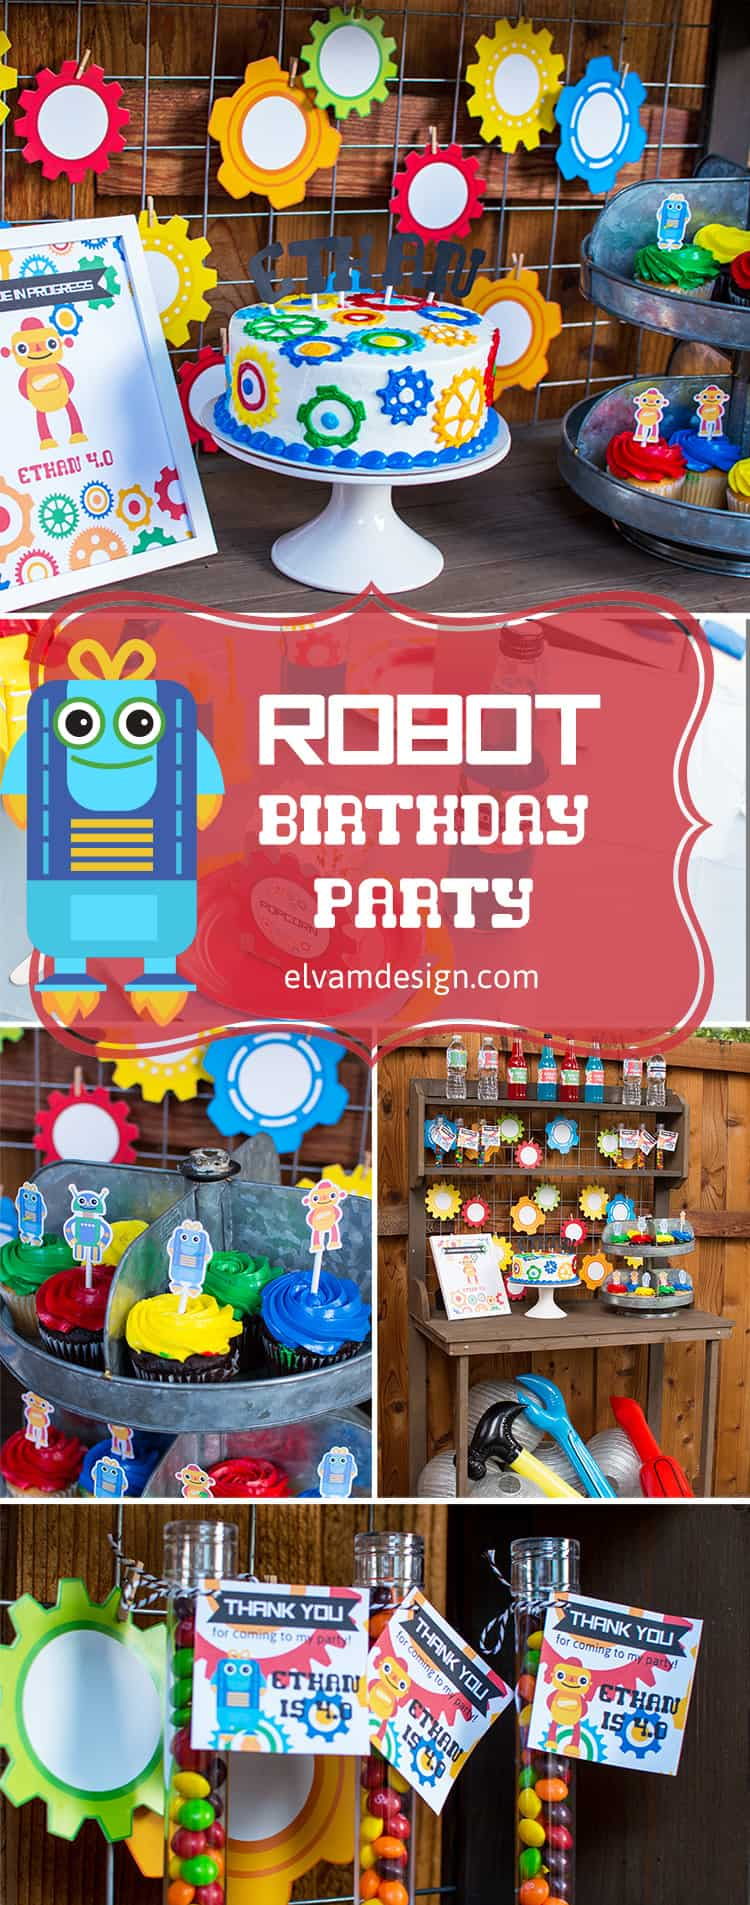 Robot Birthday Party styled by Elva M Design Studio